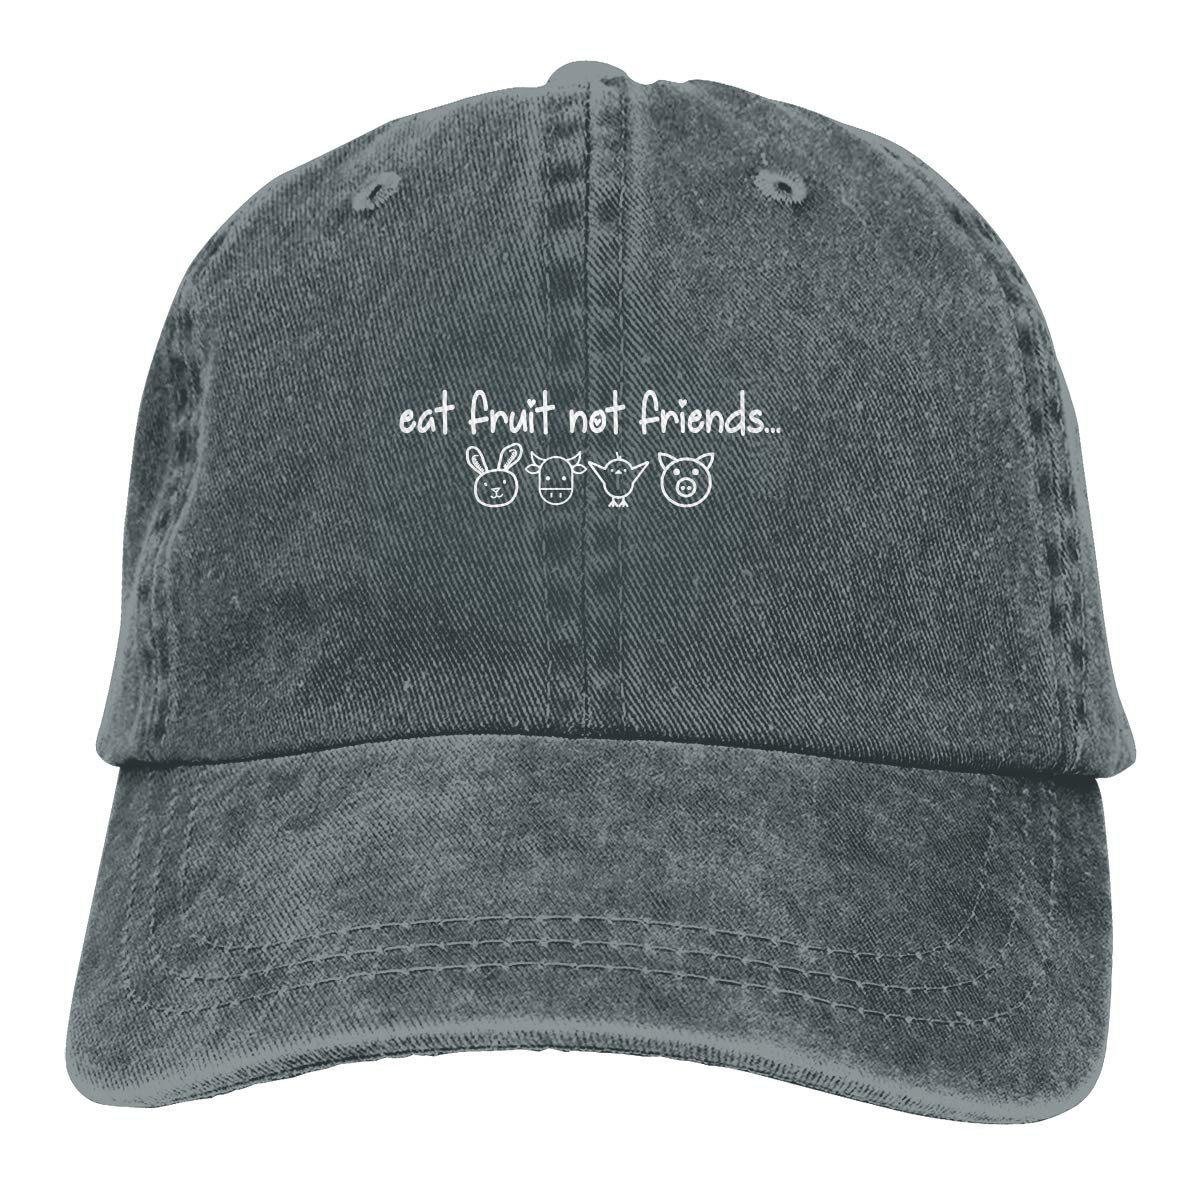 Eat Fruit Not Friends Cute Vegan Fashion Adjustable Cowboy Cap Denim Hat for Women and Men